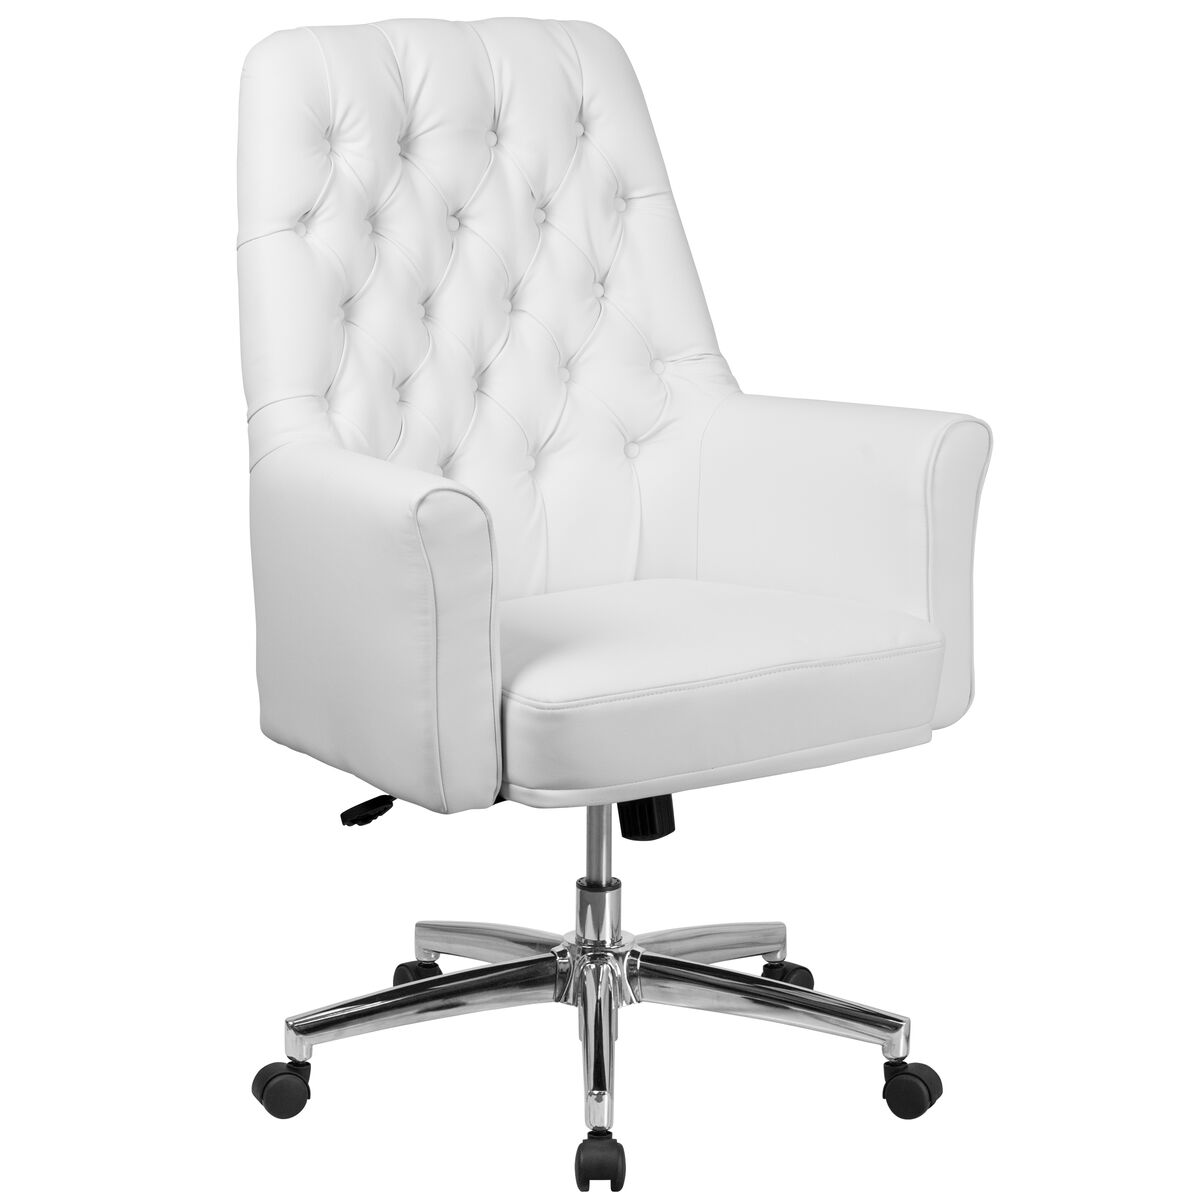 white leather swivel armchair white mid back leather chair bt 444 mid wh gg bizchair com 22013 | FLASH FURNITURE BT 444 MID WH GG MAIN IMAGE